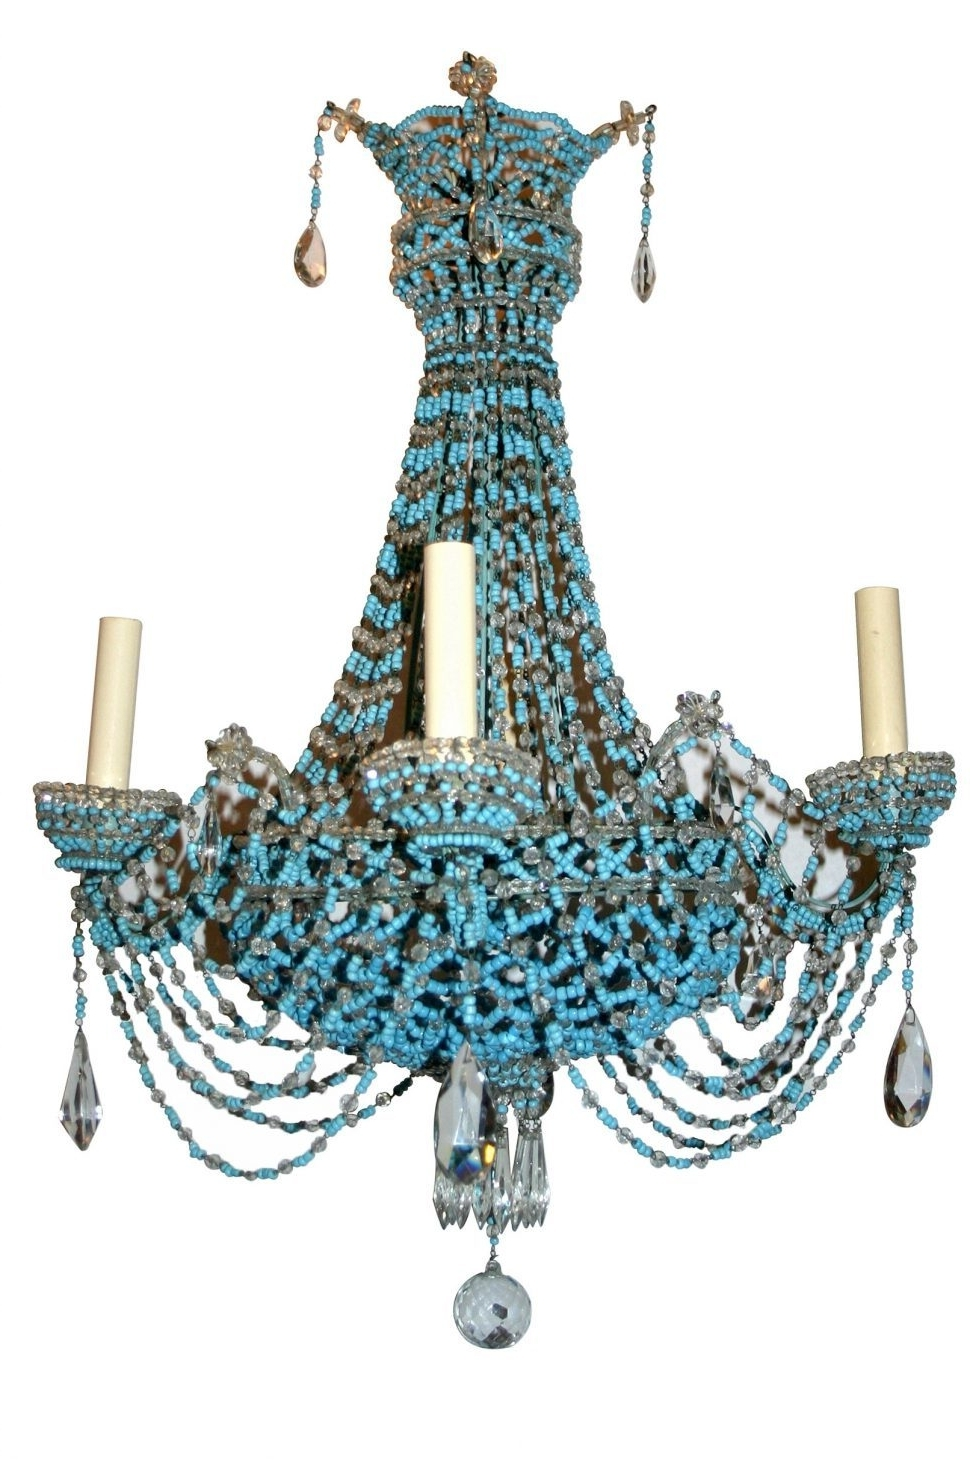 Diy Turquoise Beaded Chandeliers For Latest Lighting : Regina Andrew Turquoise Chandelier Light Wood Diy Small (View 3 of 15)